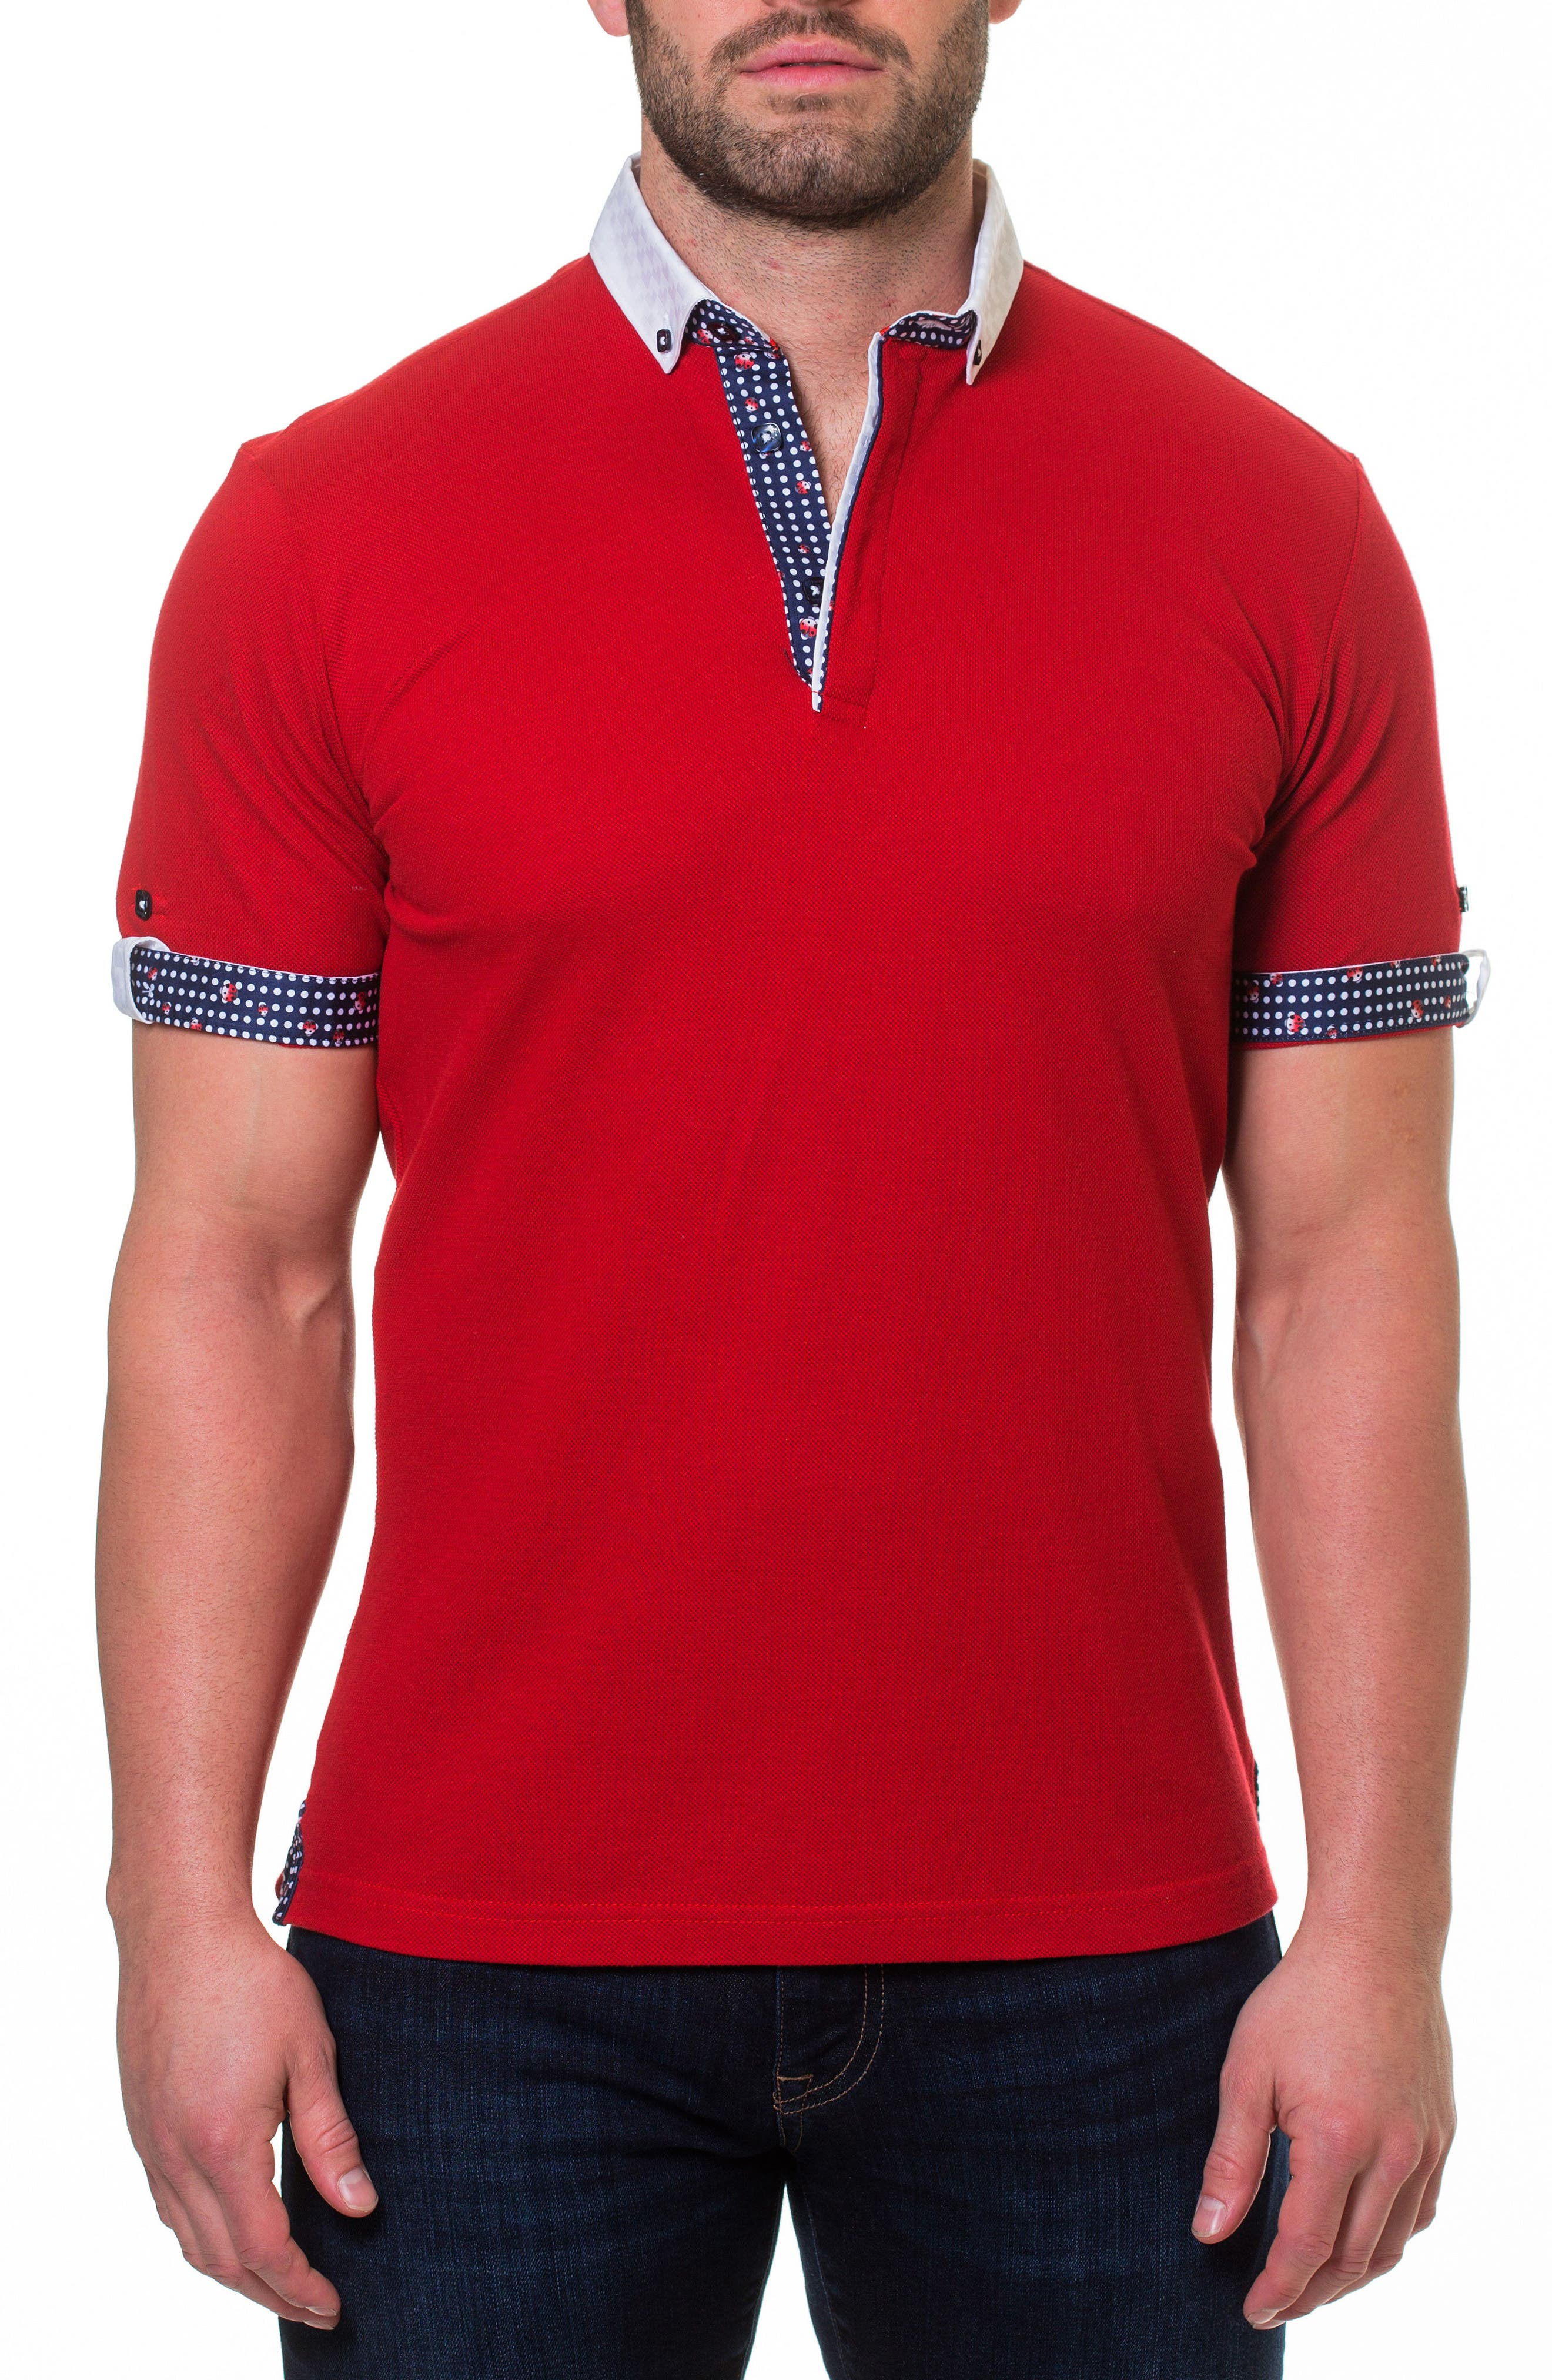 Maceoo Woven Trim Polo